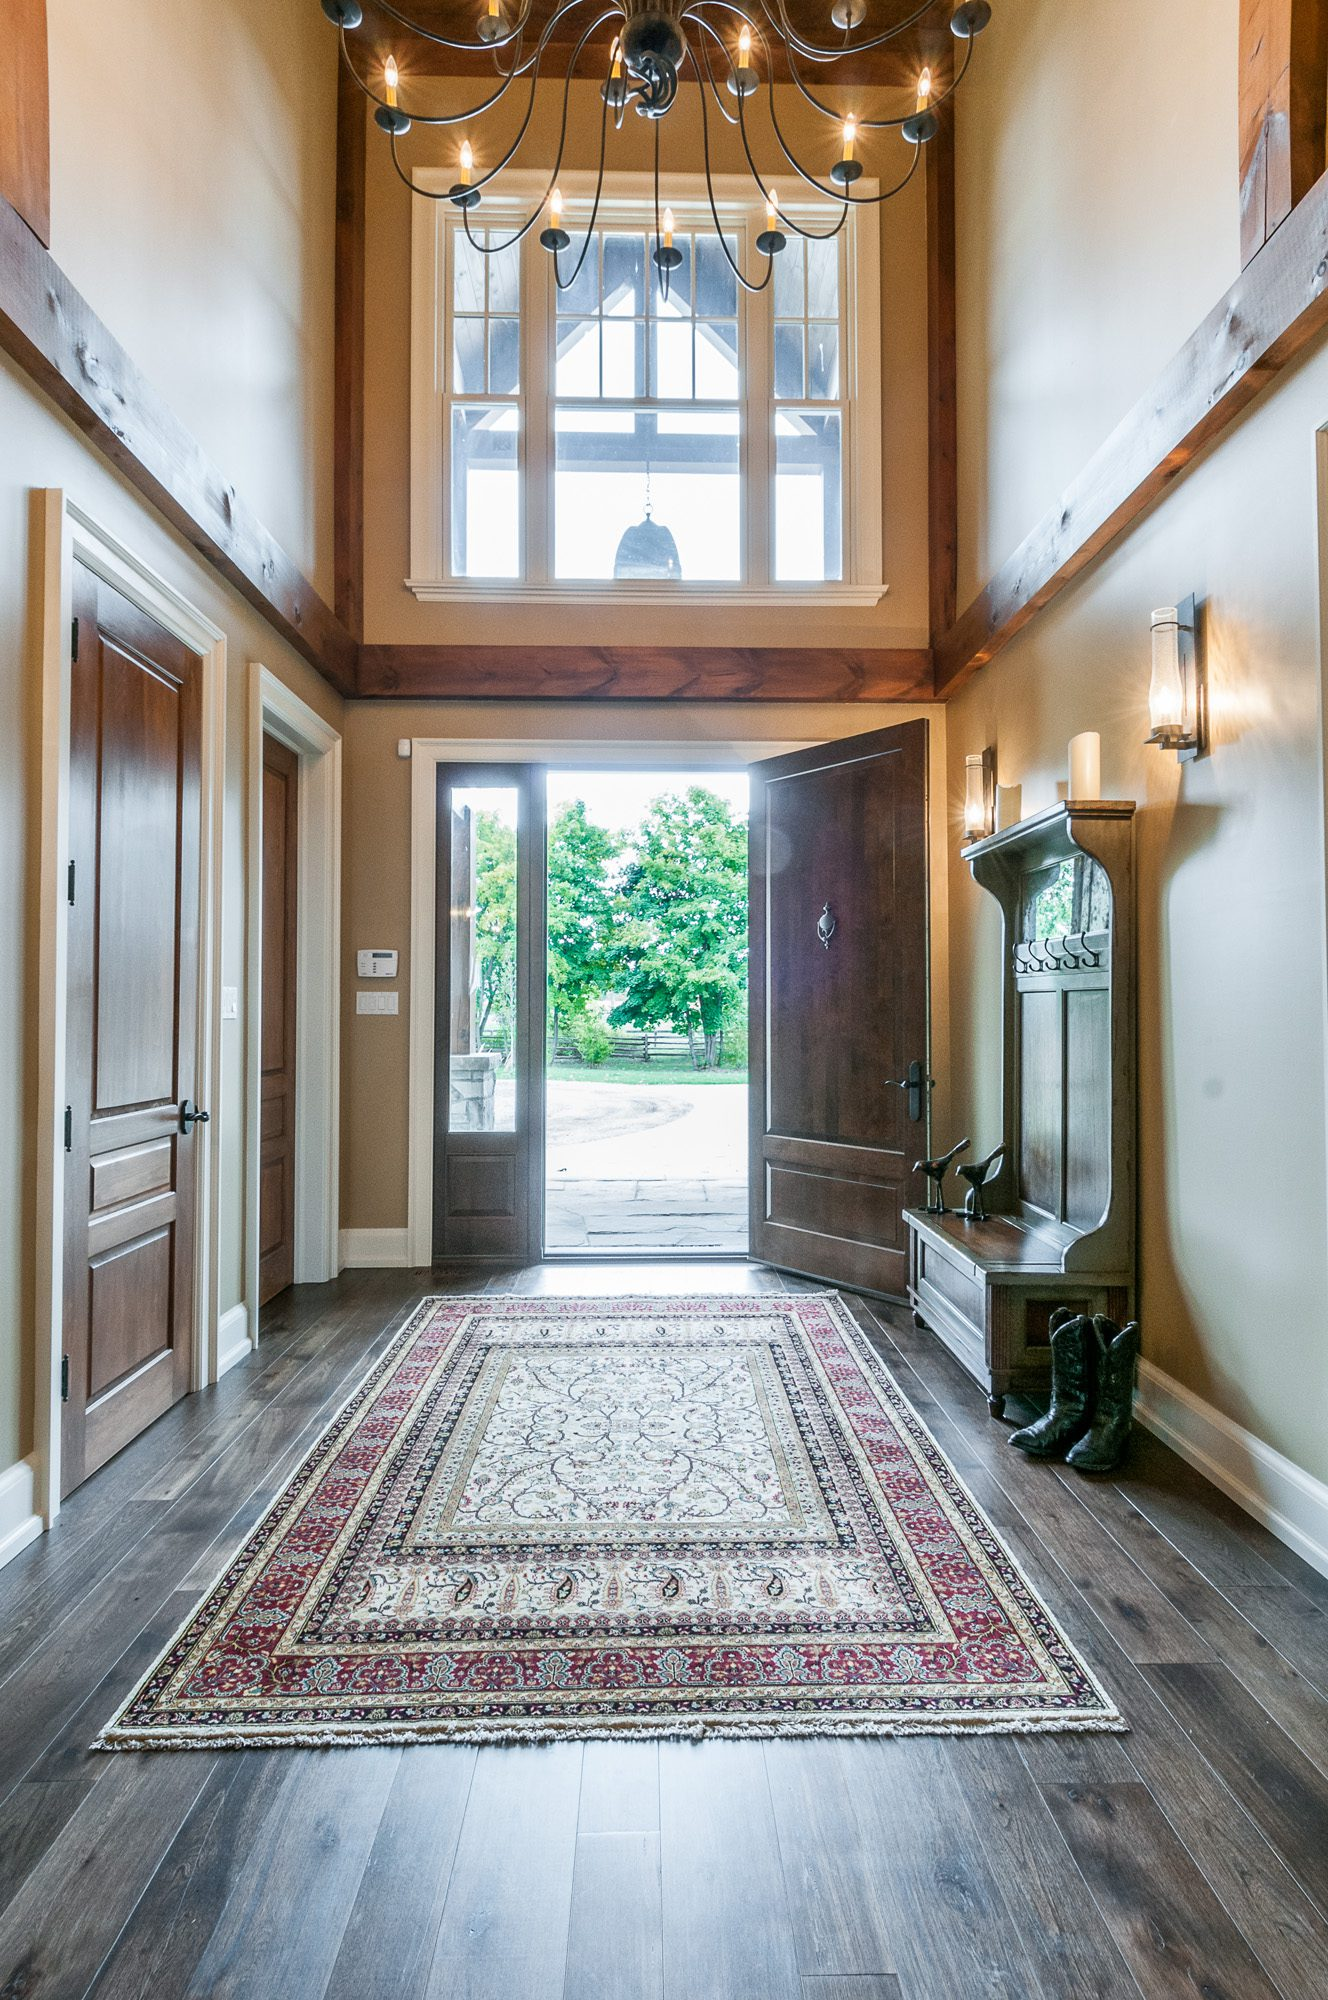 Normerica Timber Frame, Interior, Country House, Front Hall Entry